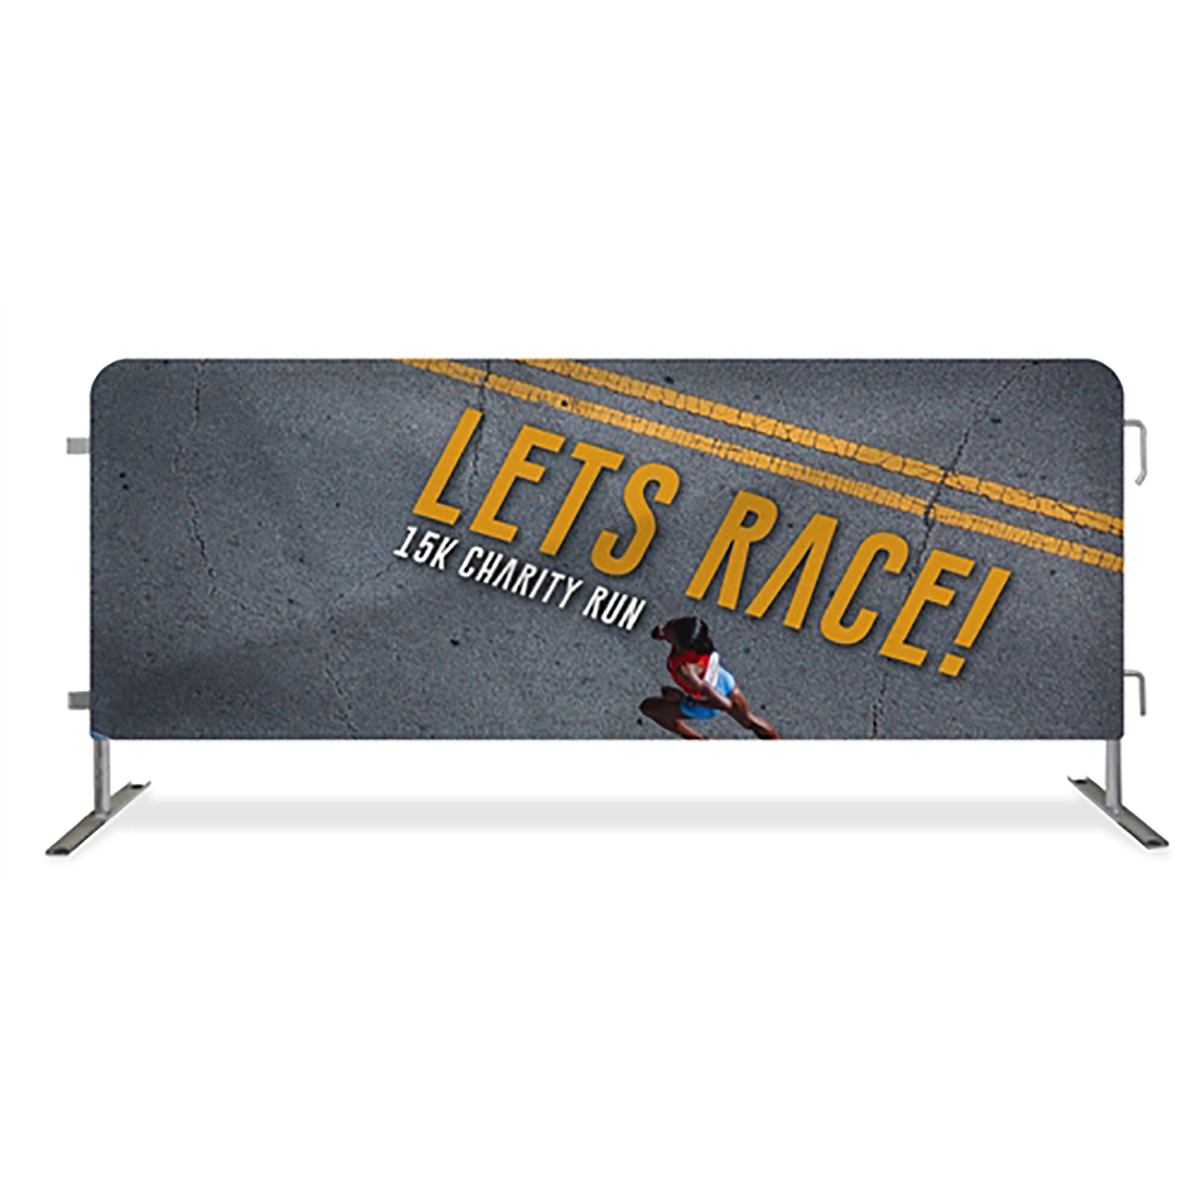 Double Sided Premium Barrier Cover - Large